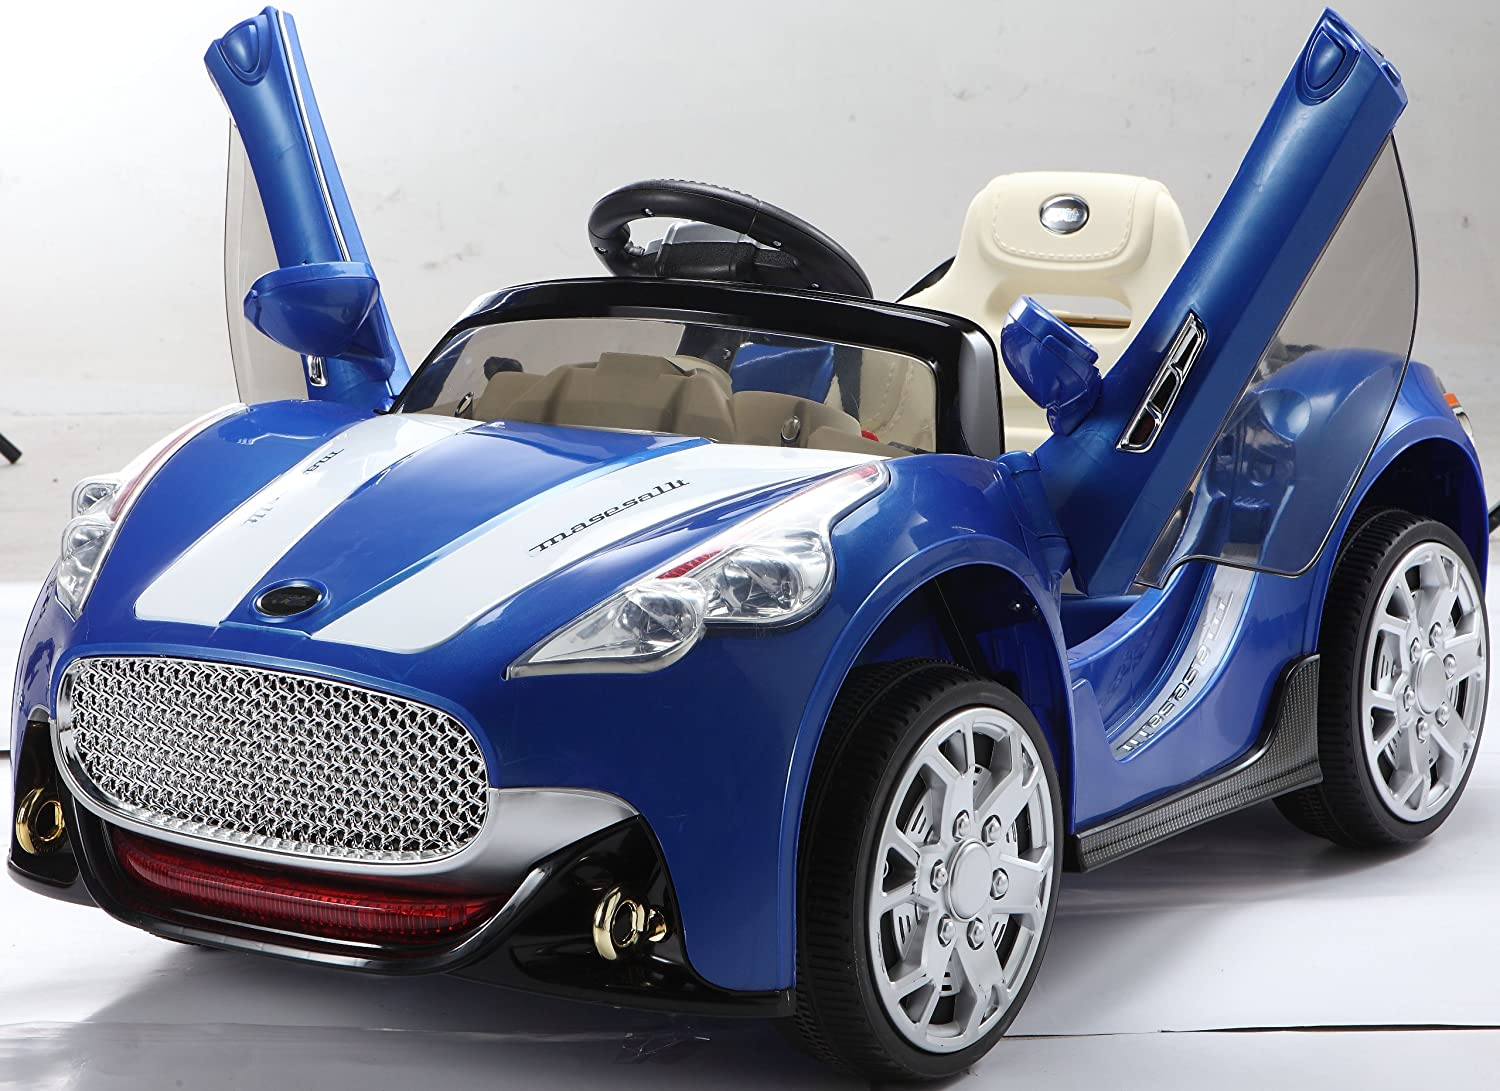 NEW DESIGN MASERATI STYLE BLUE 12V TWIN MOTORS KIDS RIDE ON CAR